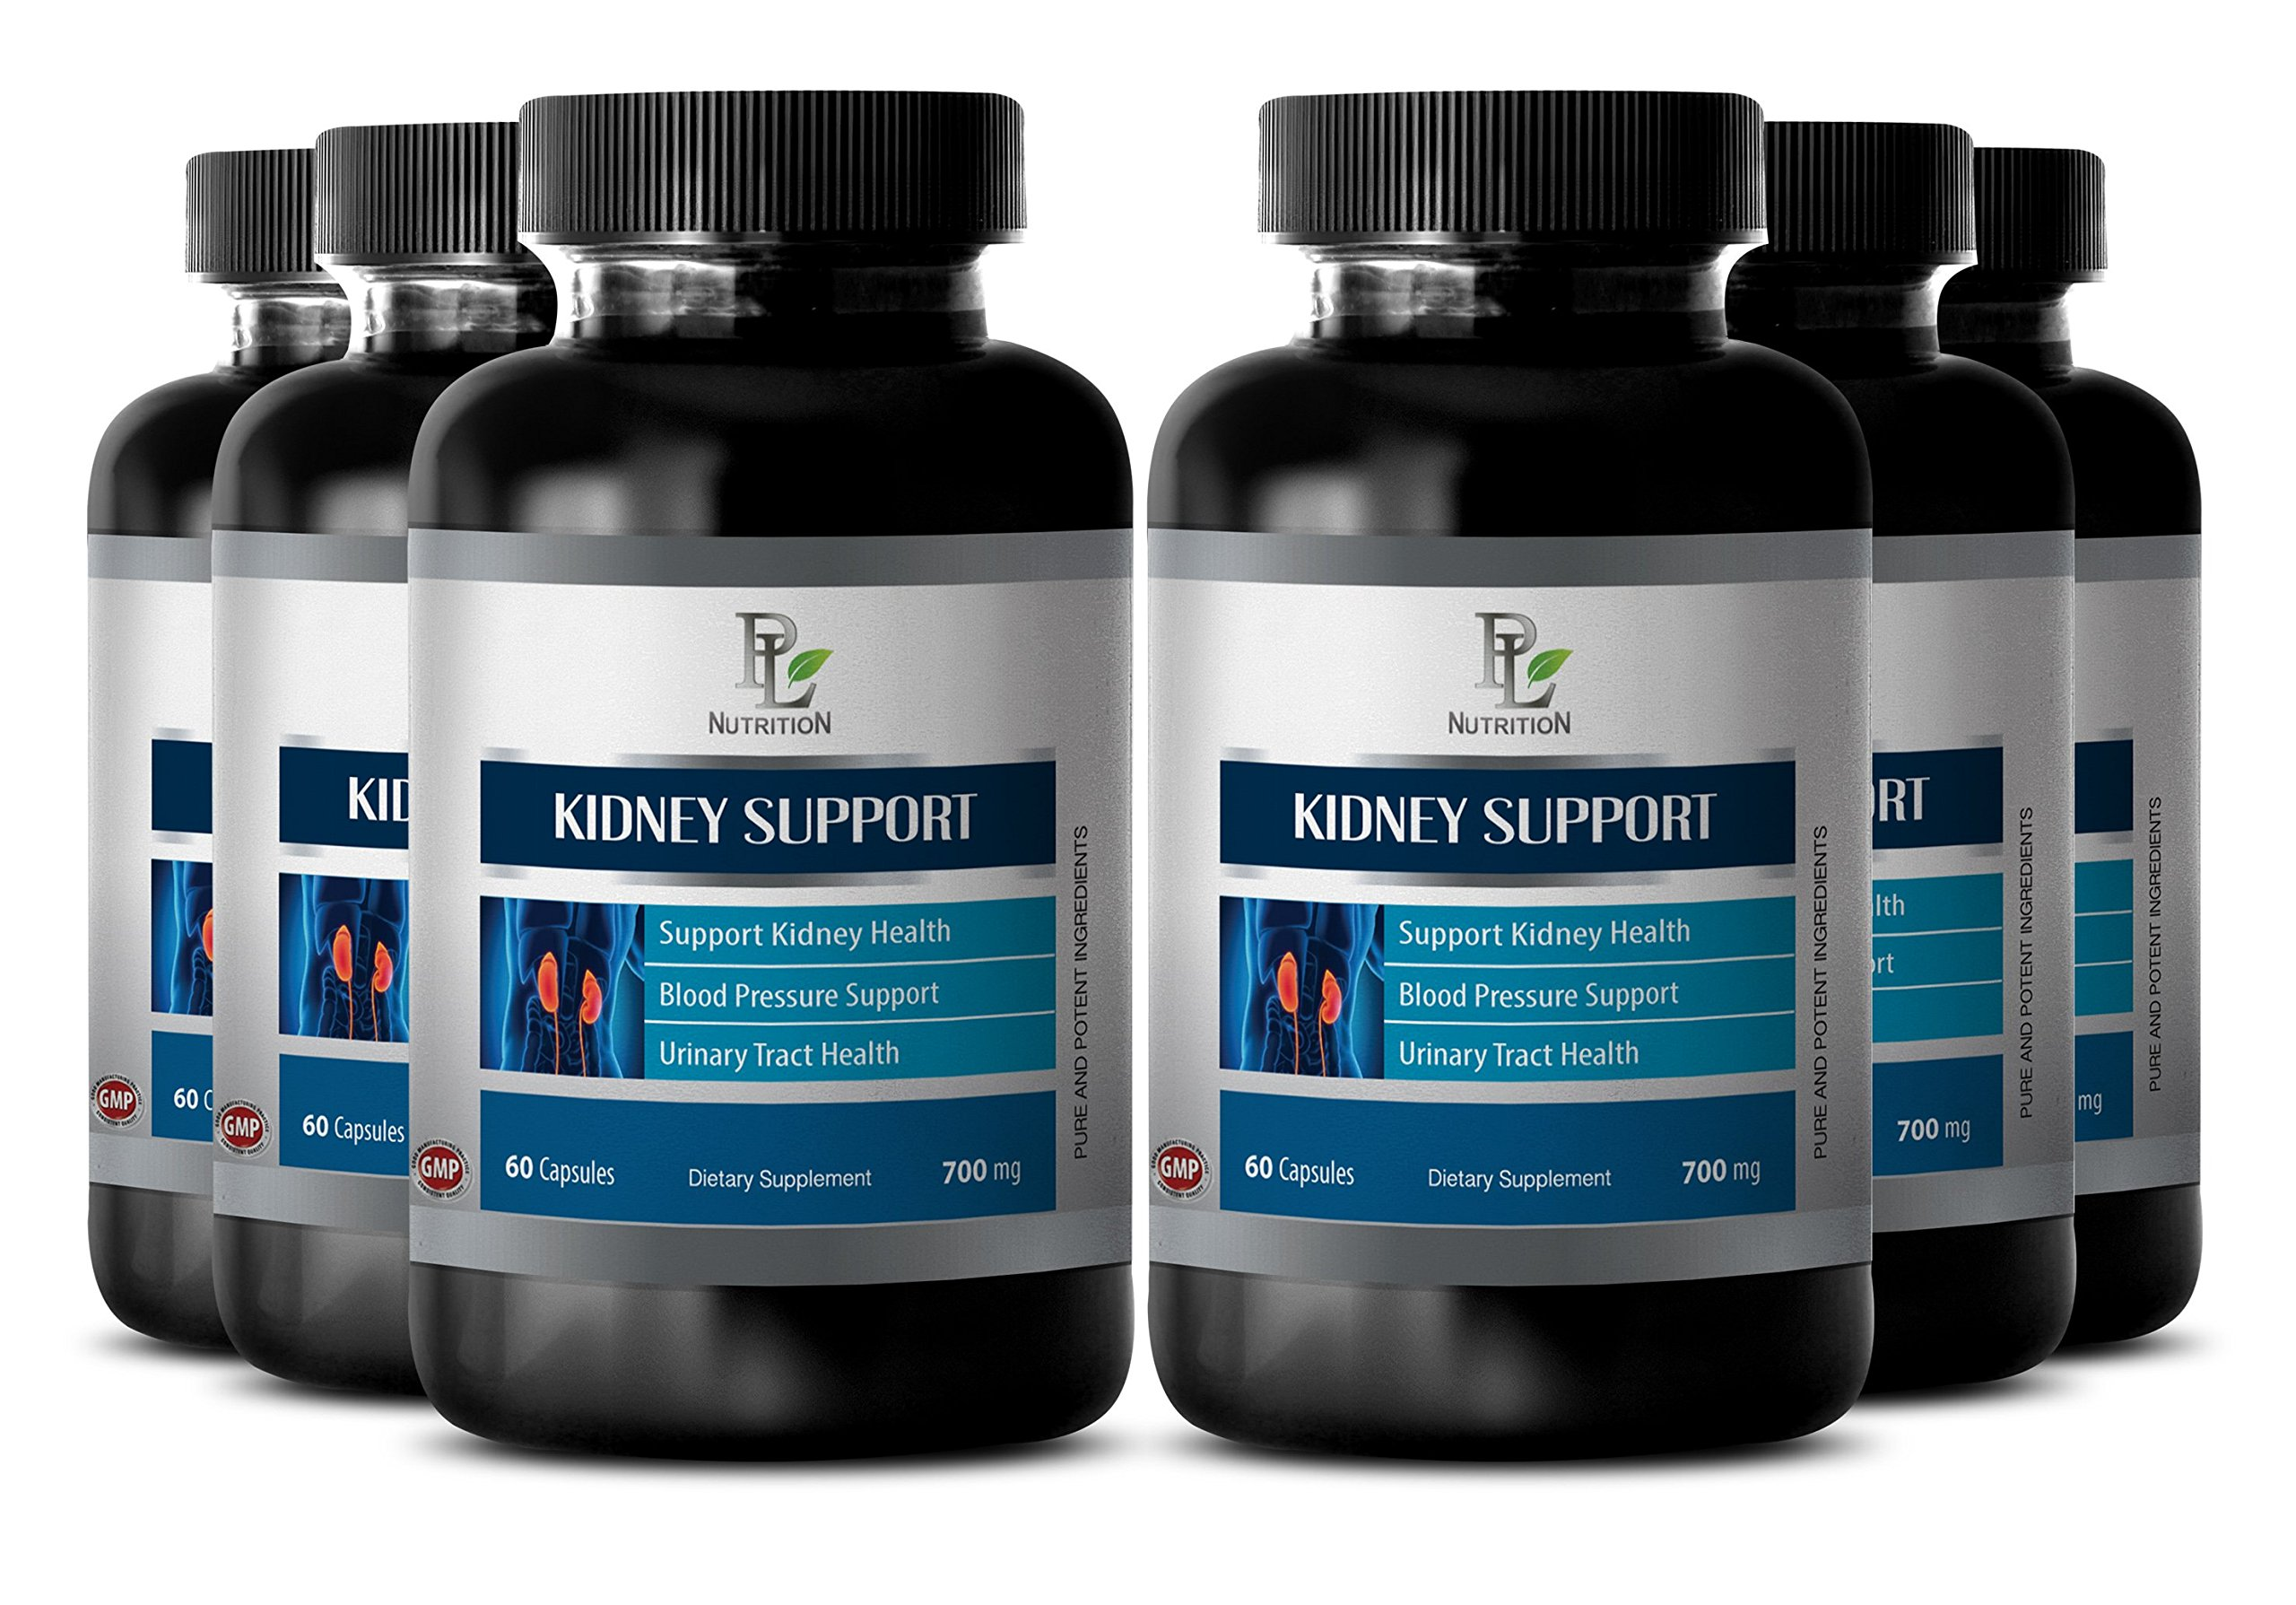 Prostate Support - Kidney Support Complex - Astragalus Root - 6 Bottles 360 Capsules by PL NUTRITION